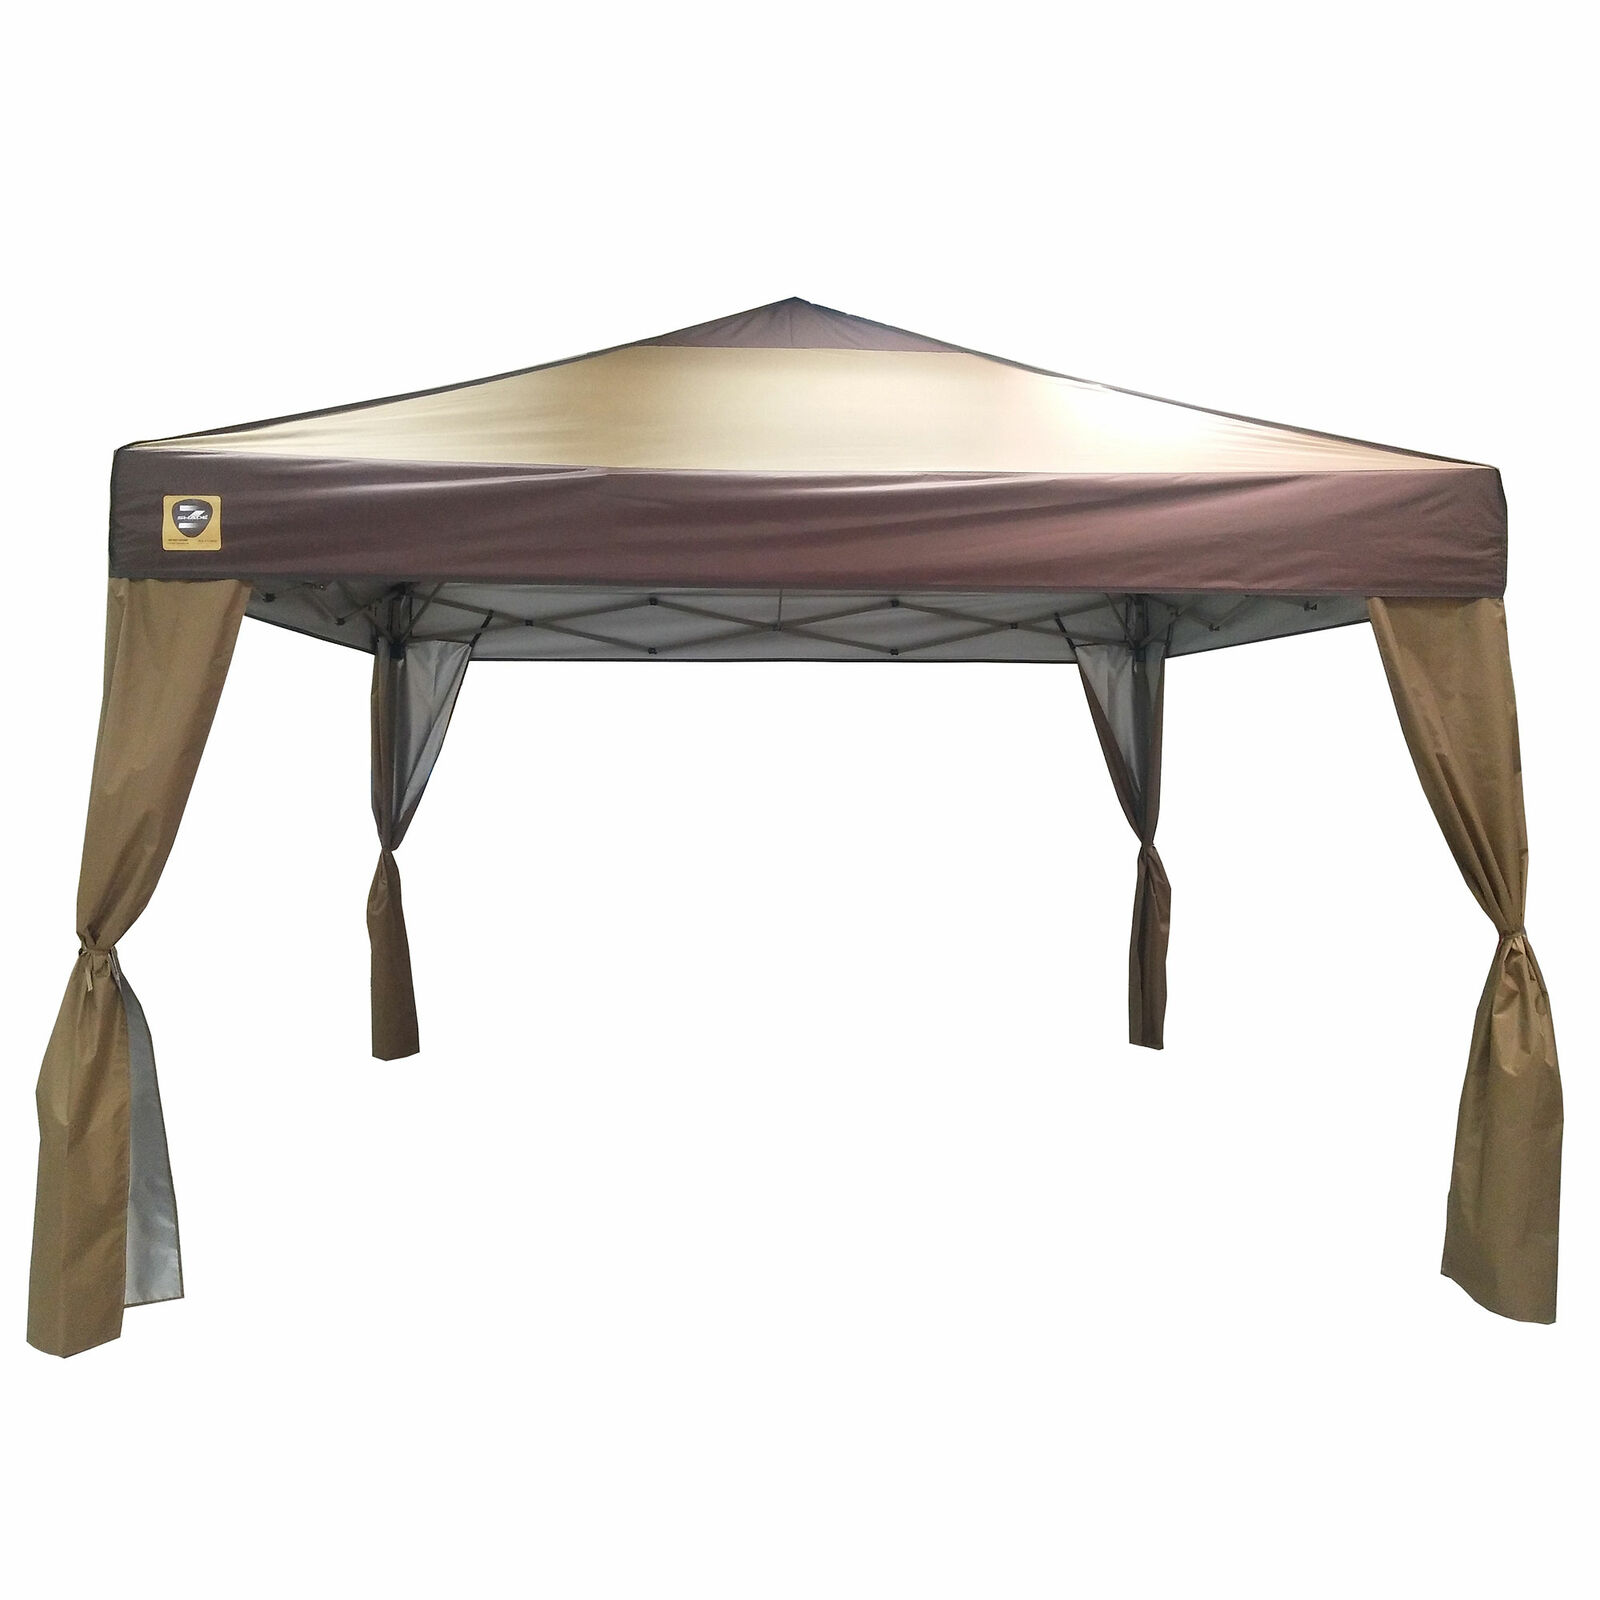 Z-Shade 10 x  10 Foot Lawn and Garden Outdoor Portable Canopy with Skirts, Tan  shop clearance